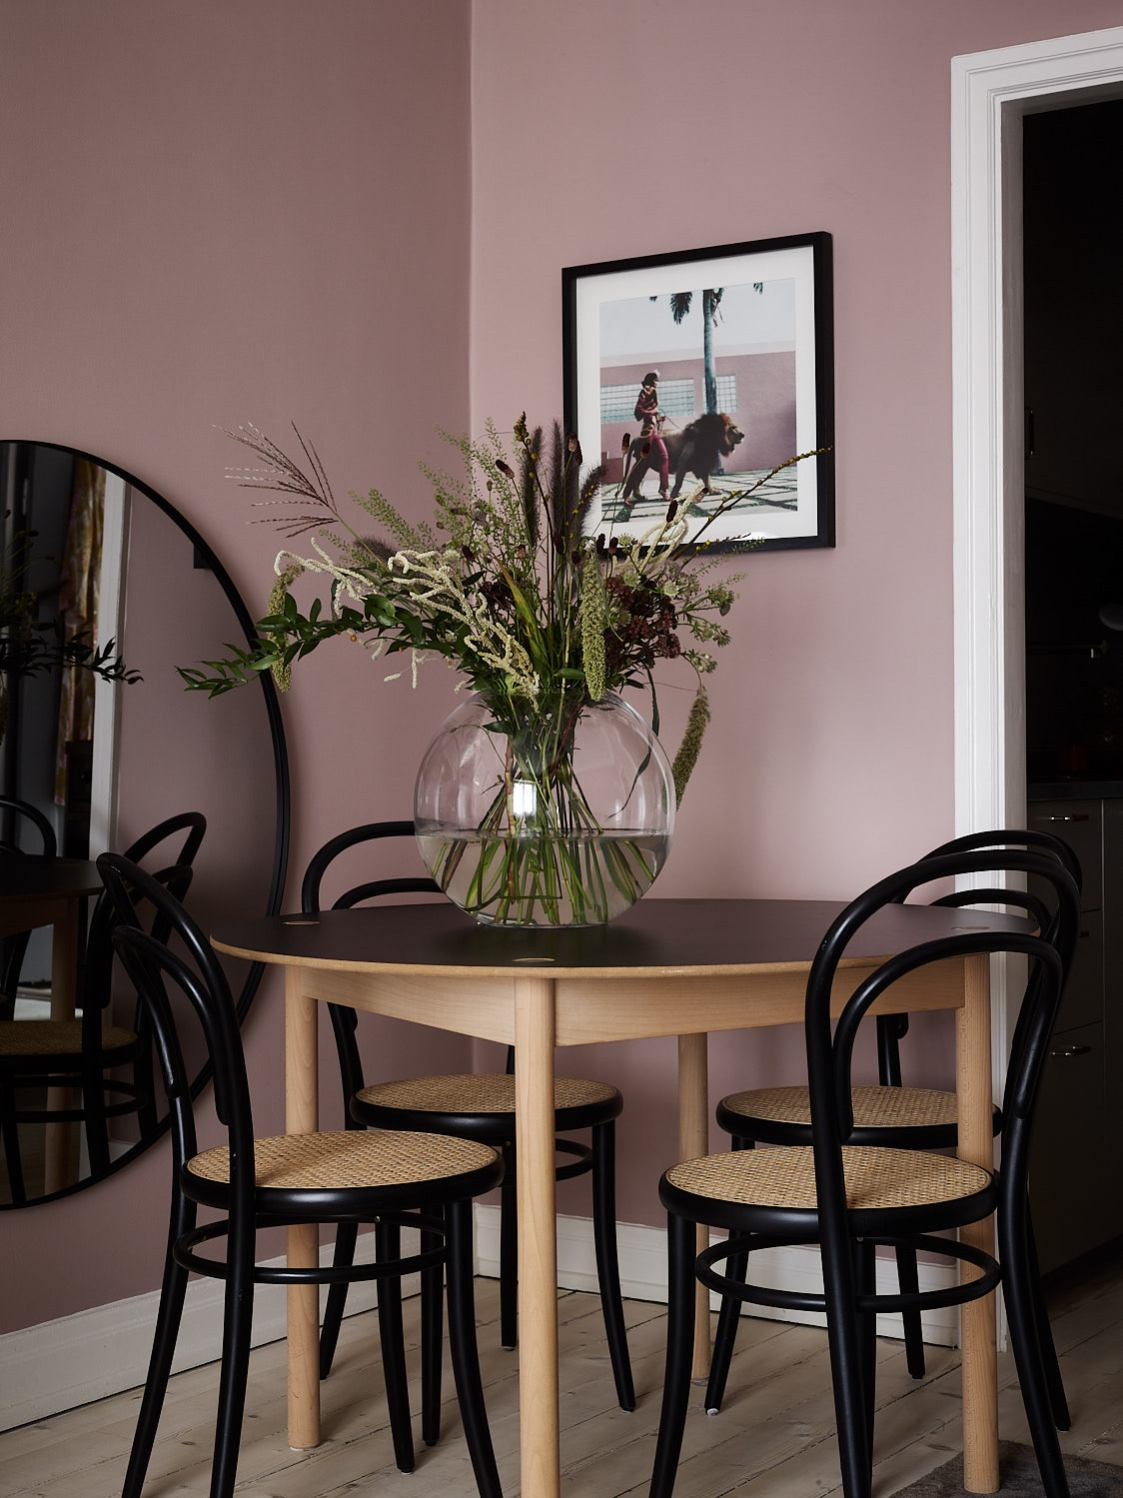 This warm pink works well with black accents. Photo Credit: Frederik Boukari